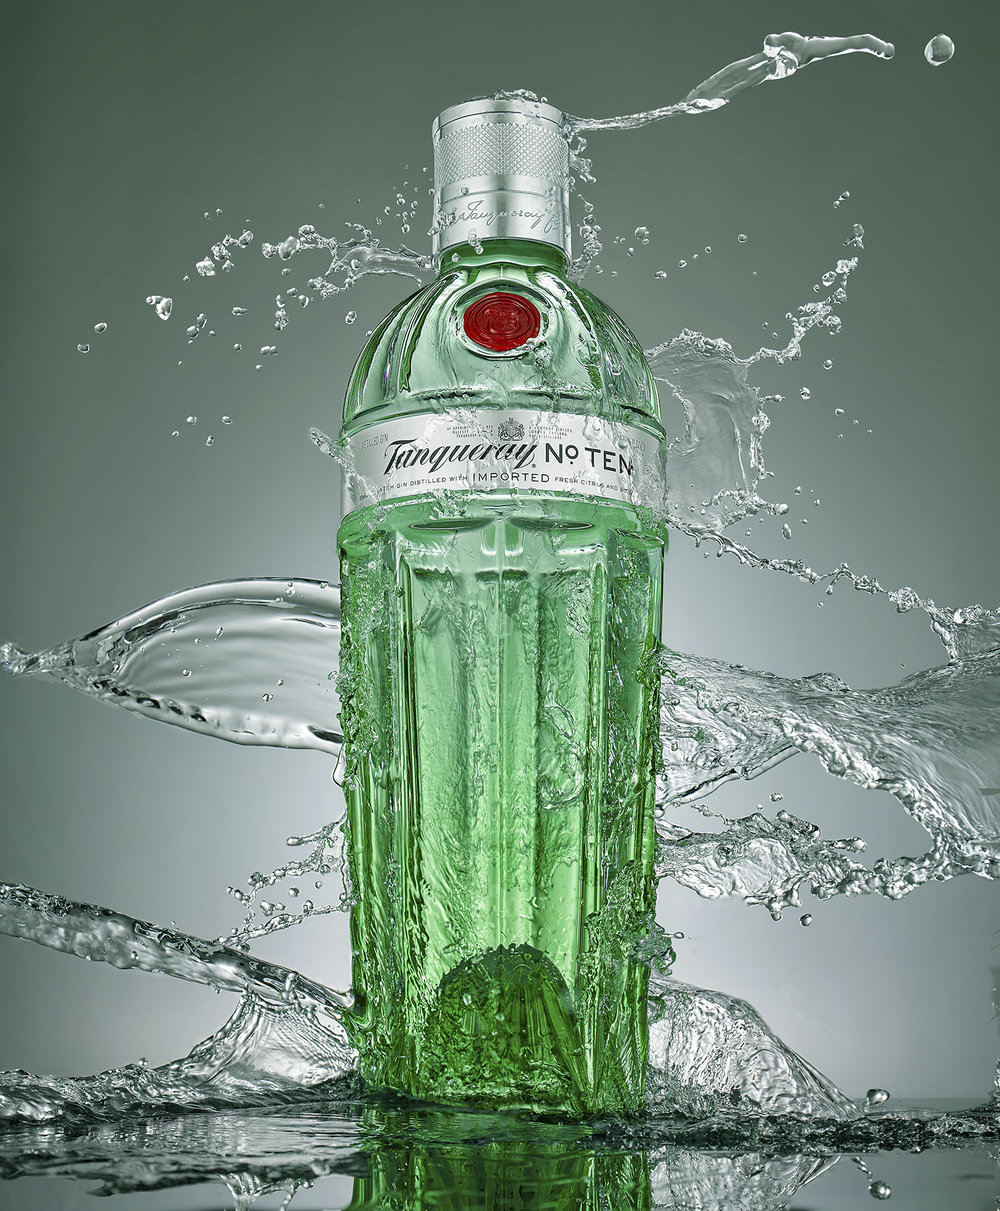 Creative high speed product photography. Drinks with water splash advertising still life photography All images completed in London by food and drinks photographer chris howlett